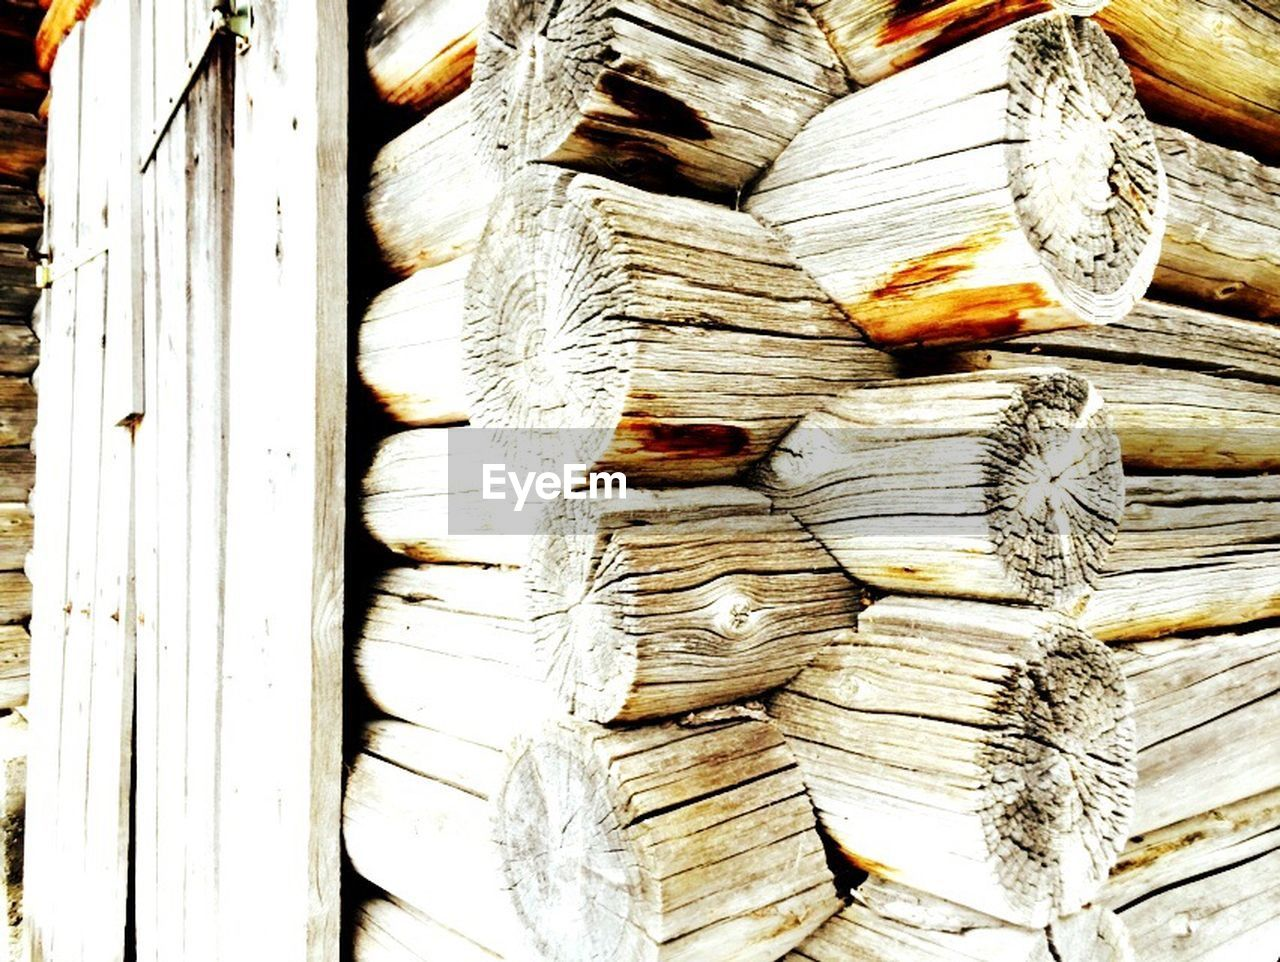 backgrounds, wood - material, full frame, timber, textured, log, no people, lumber industry, stack, deforestation, day, outdoors, close-up, tree trunk, woodpile, forestry industry